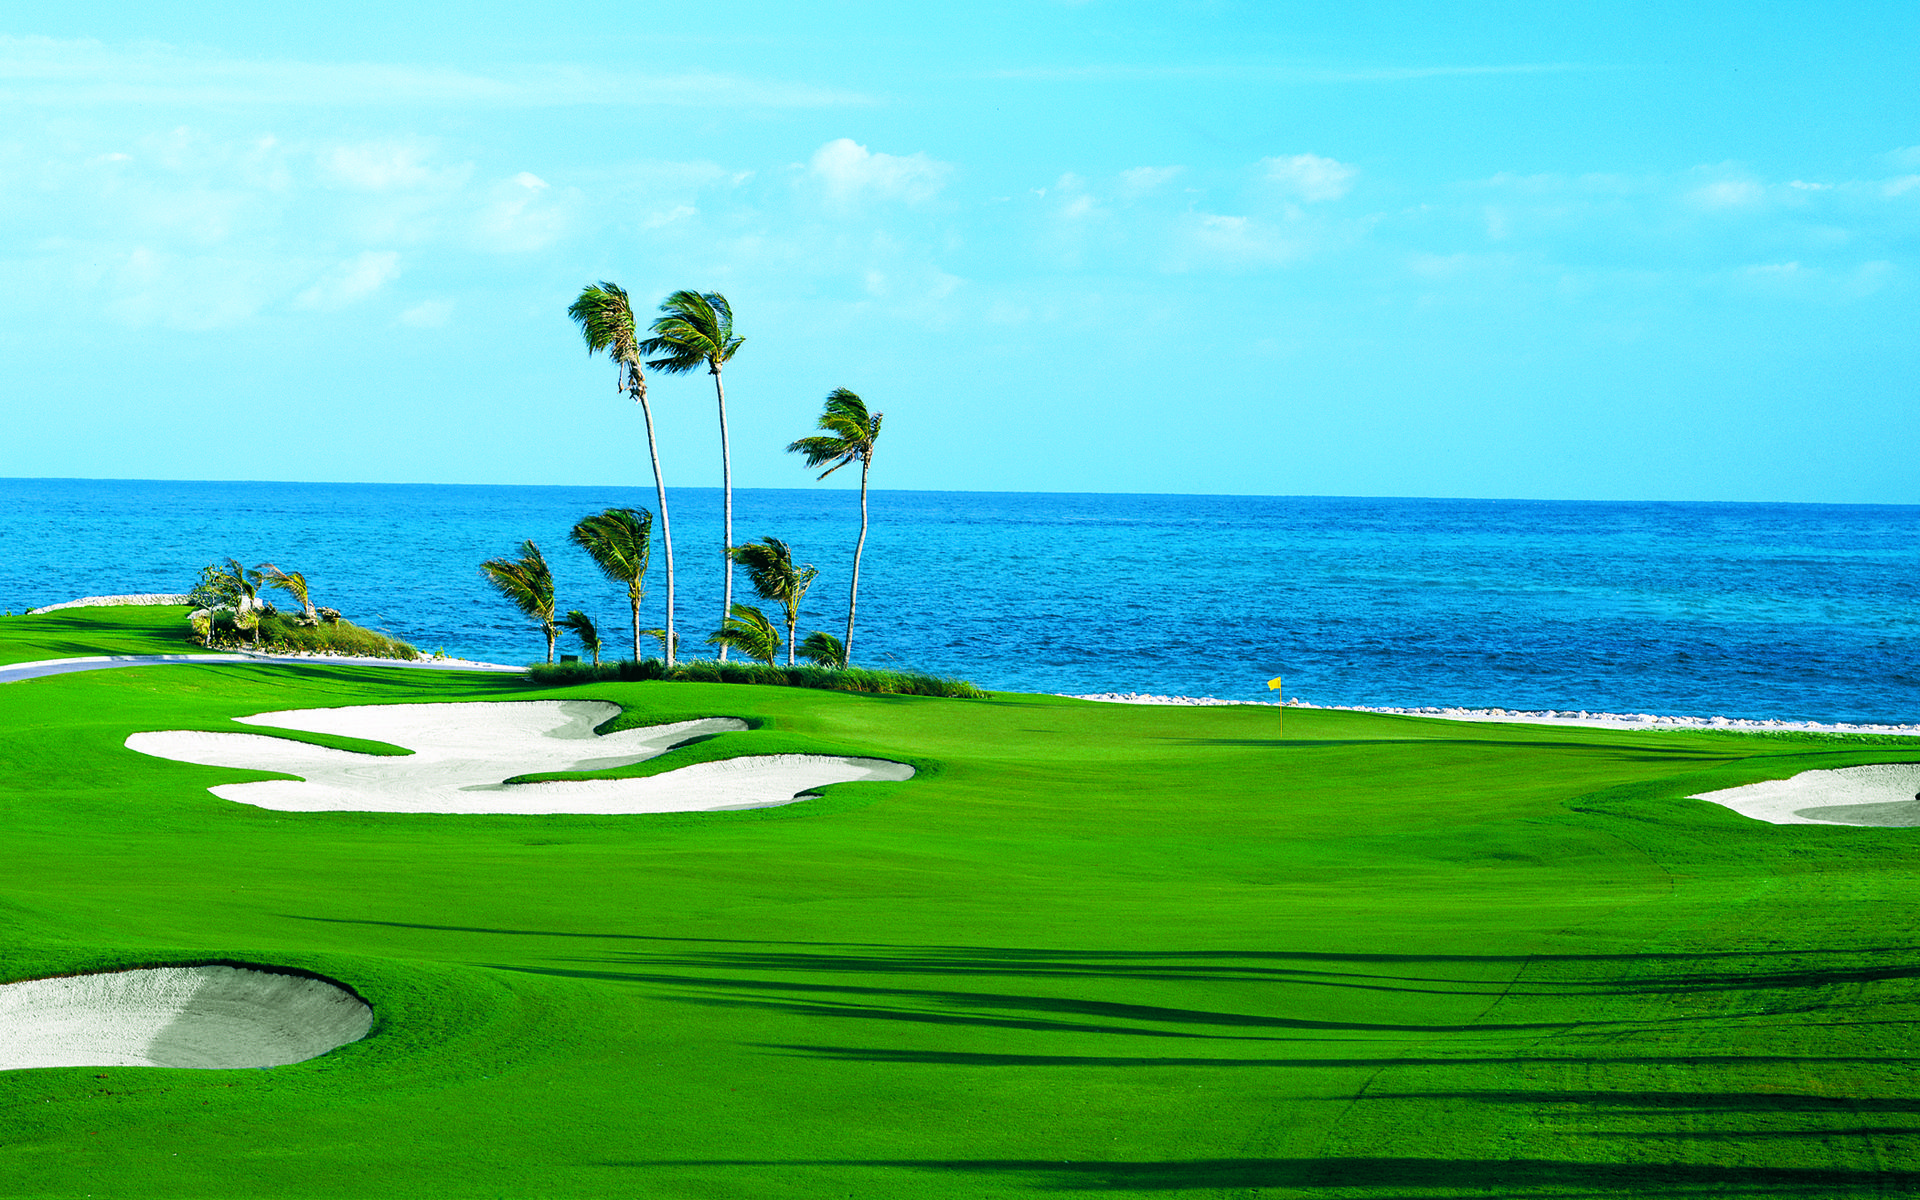 golf course images free